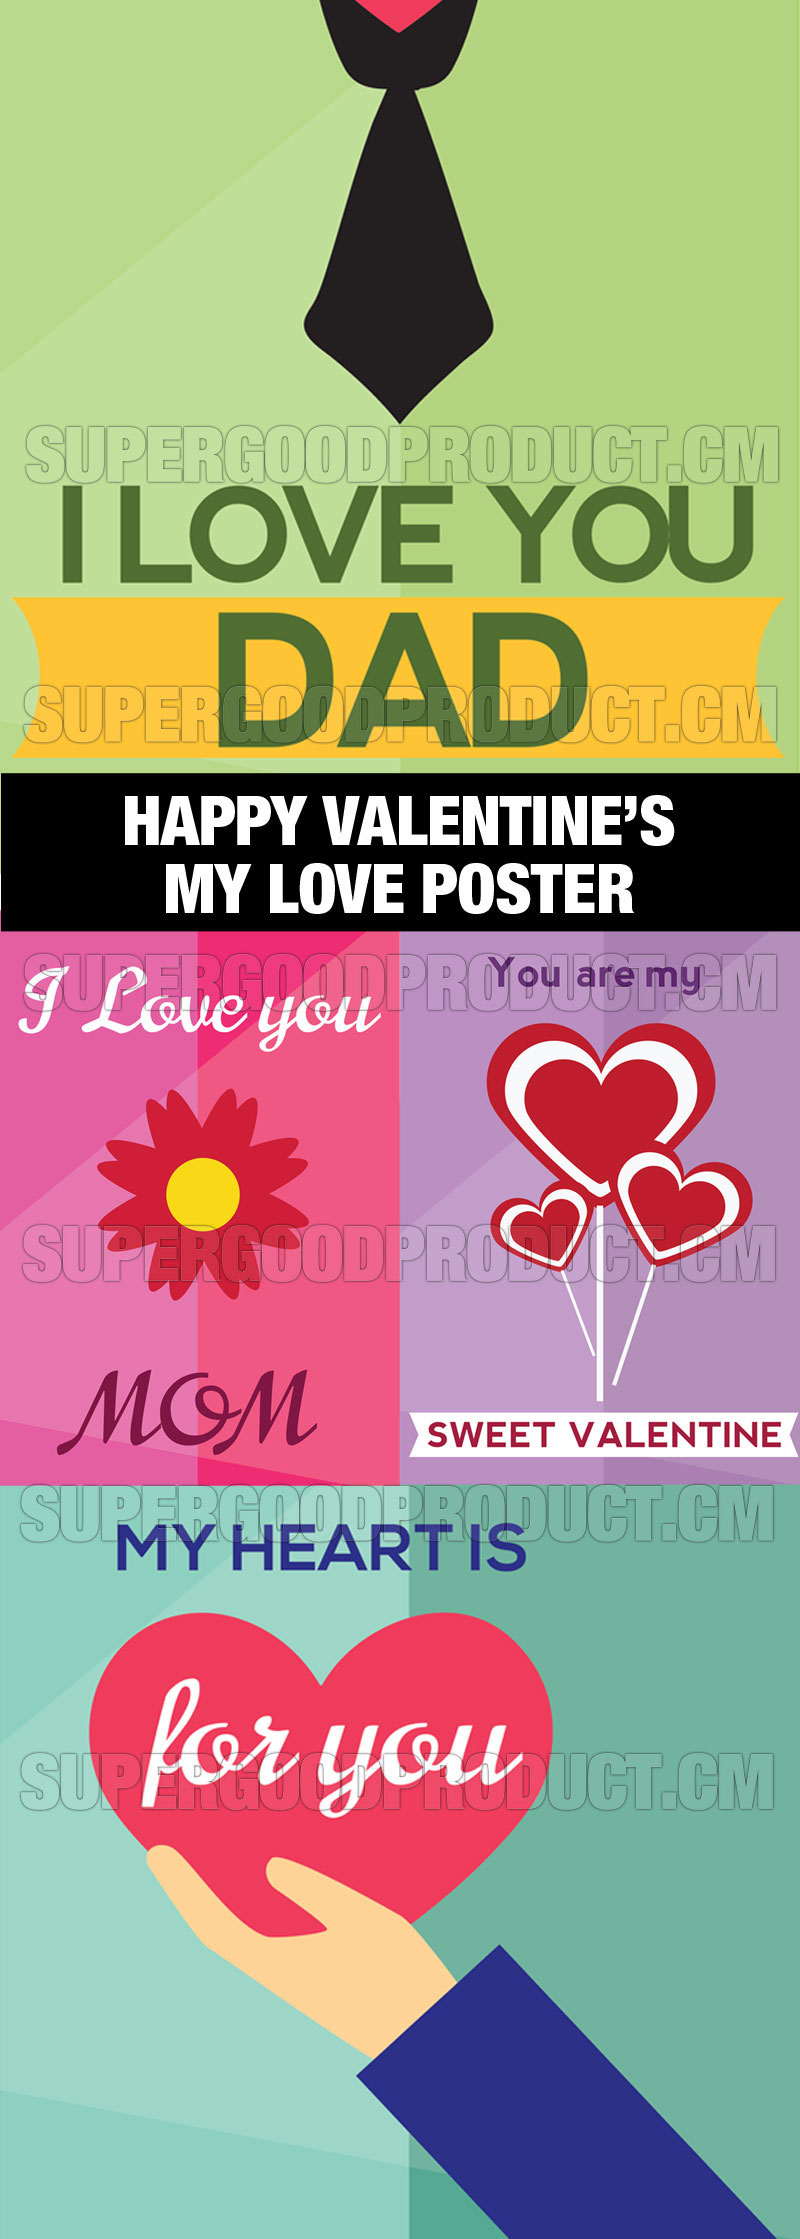 Happy-Valentines-Day-My-Love-Poster